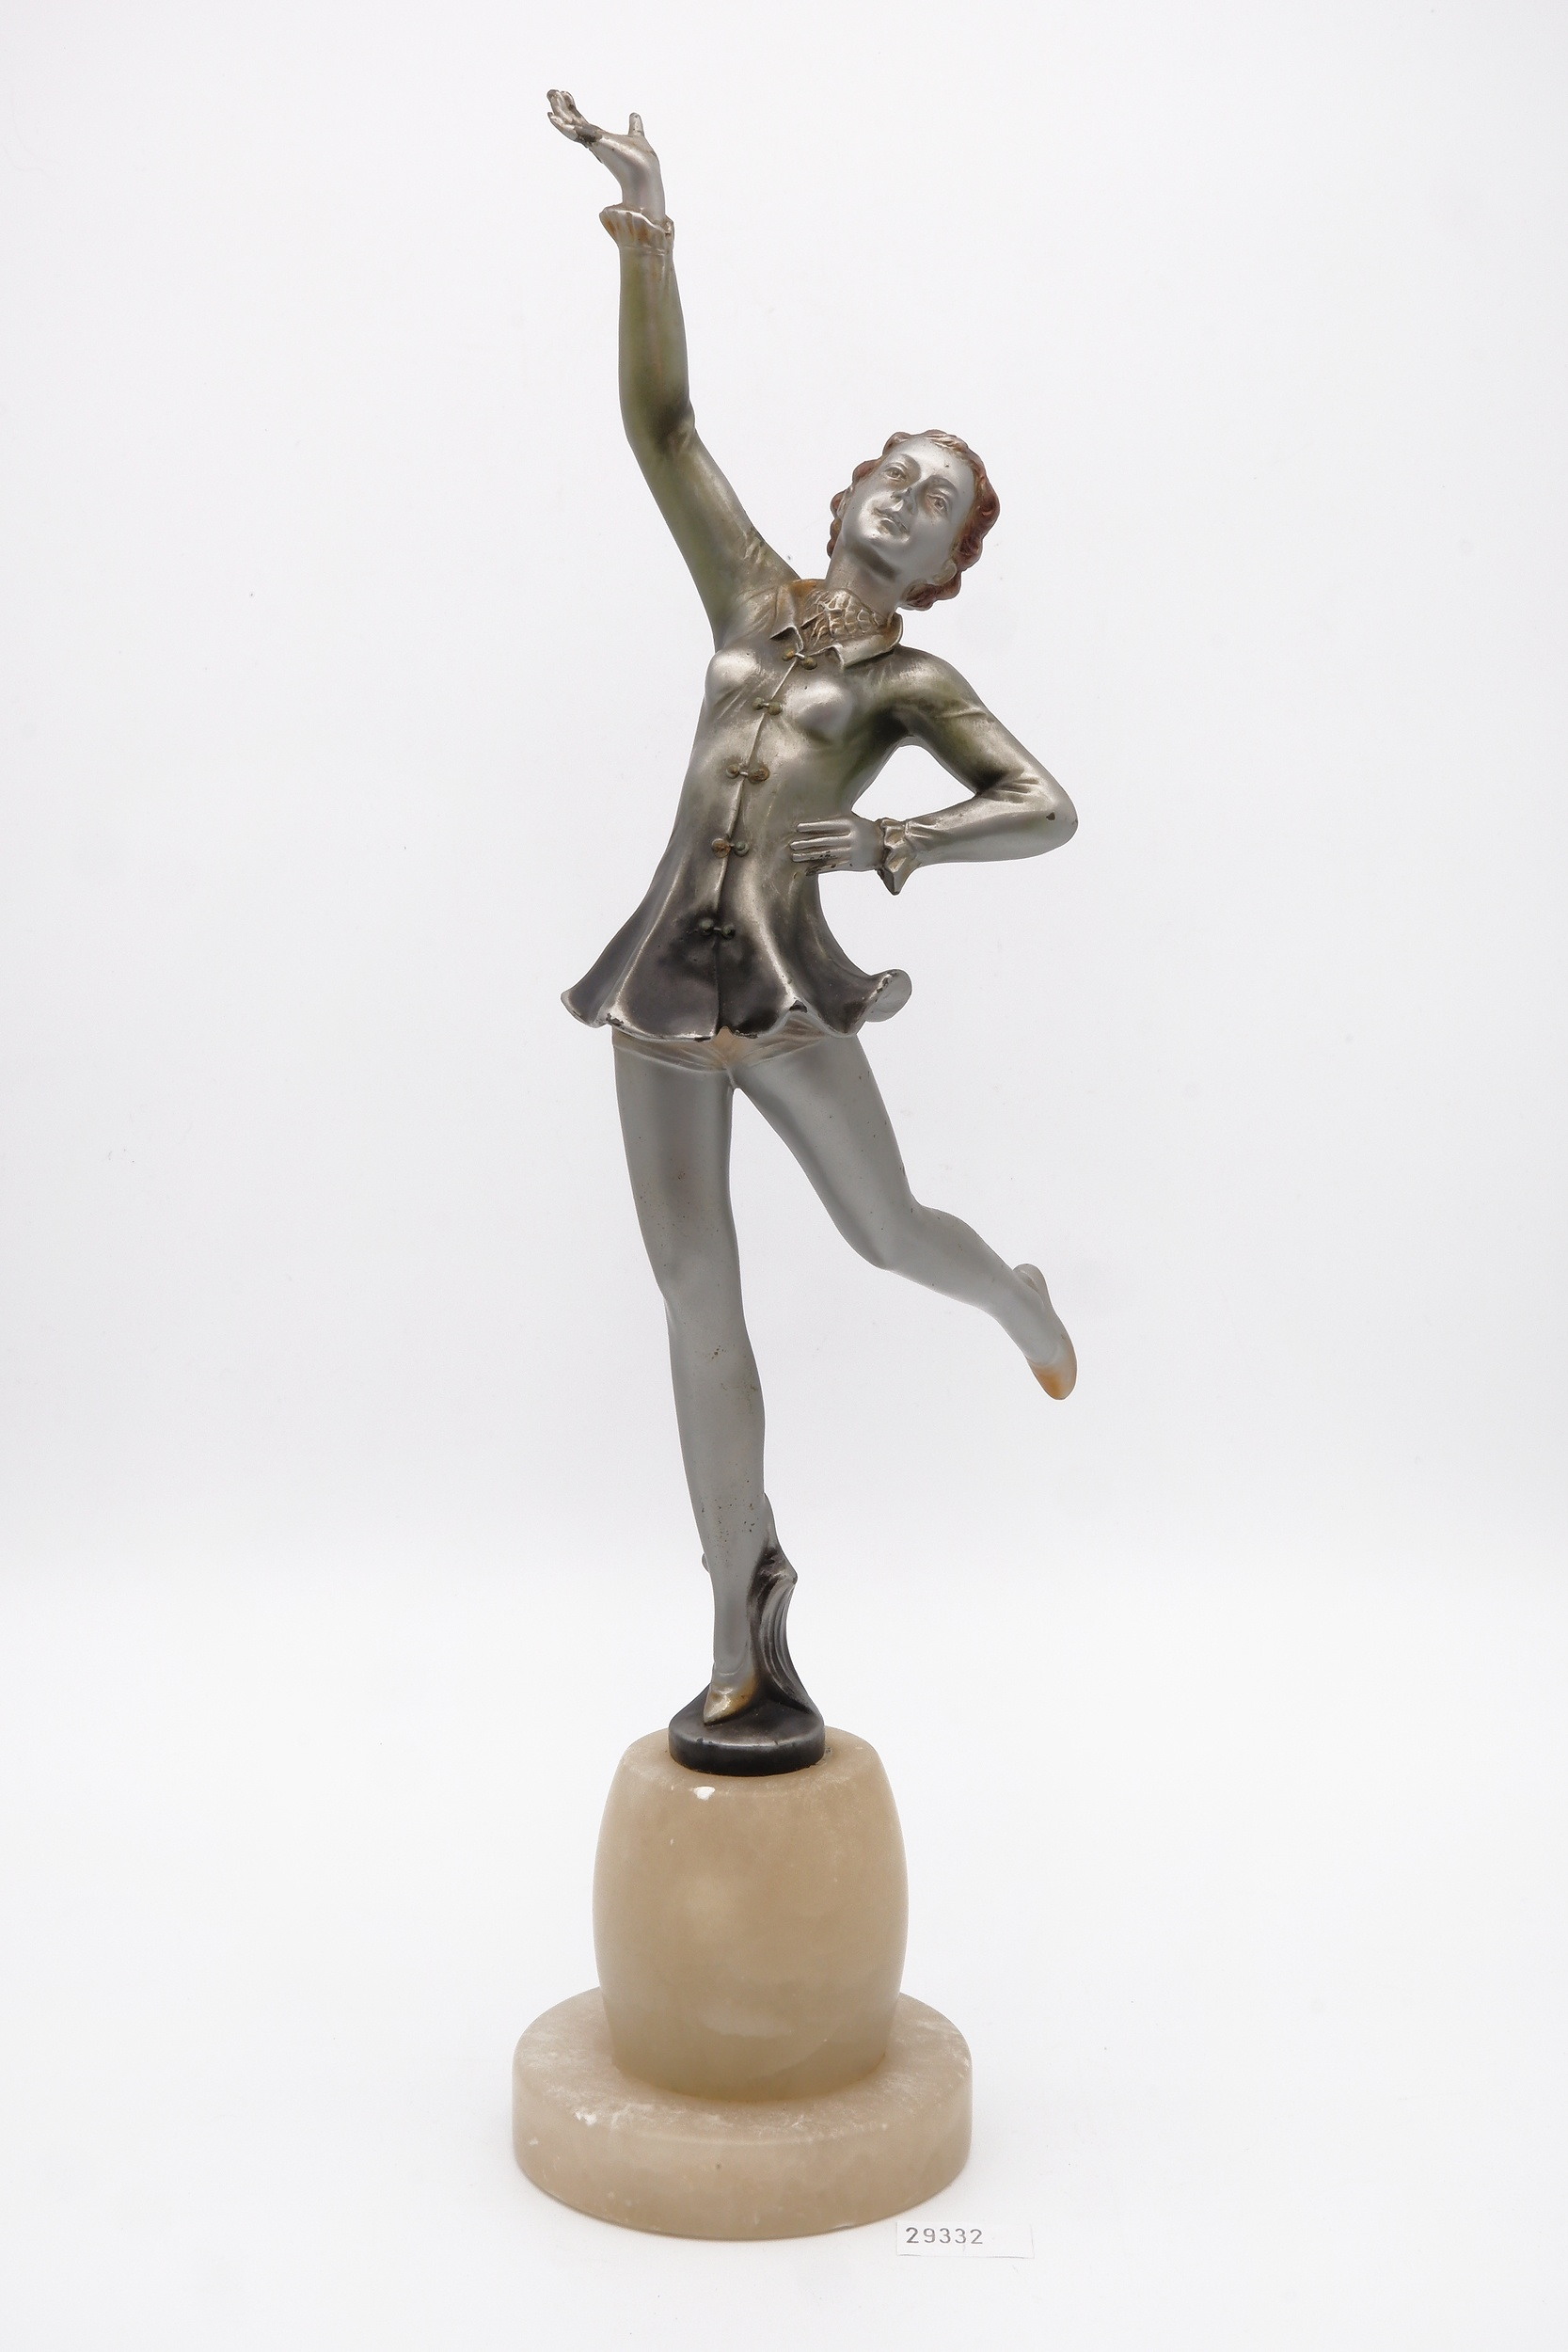 'Attributed to Josef Lorenzl (Austrian 1892-1950) Unsigned Art Deco Cold Painted Bronze Figure of a Dancer on an Alabaster Socle, Circa 1920s'